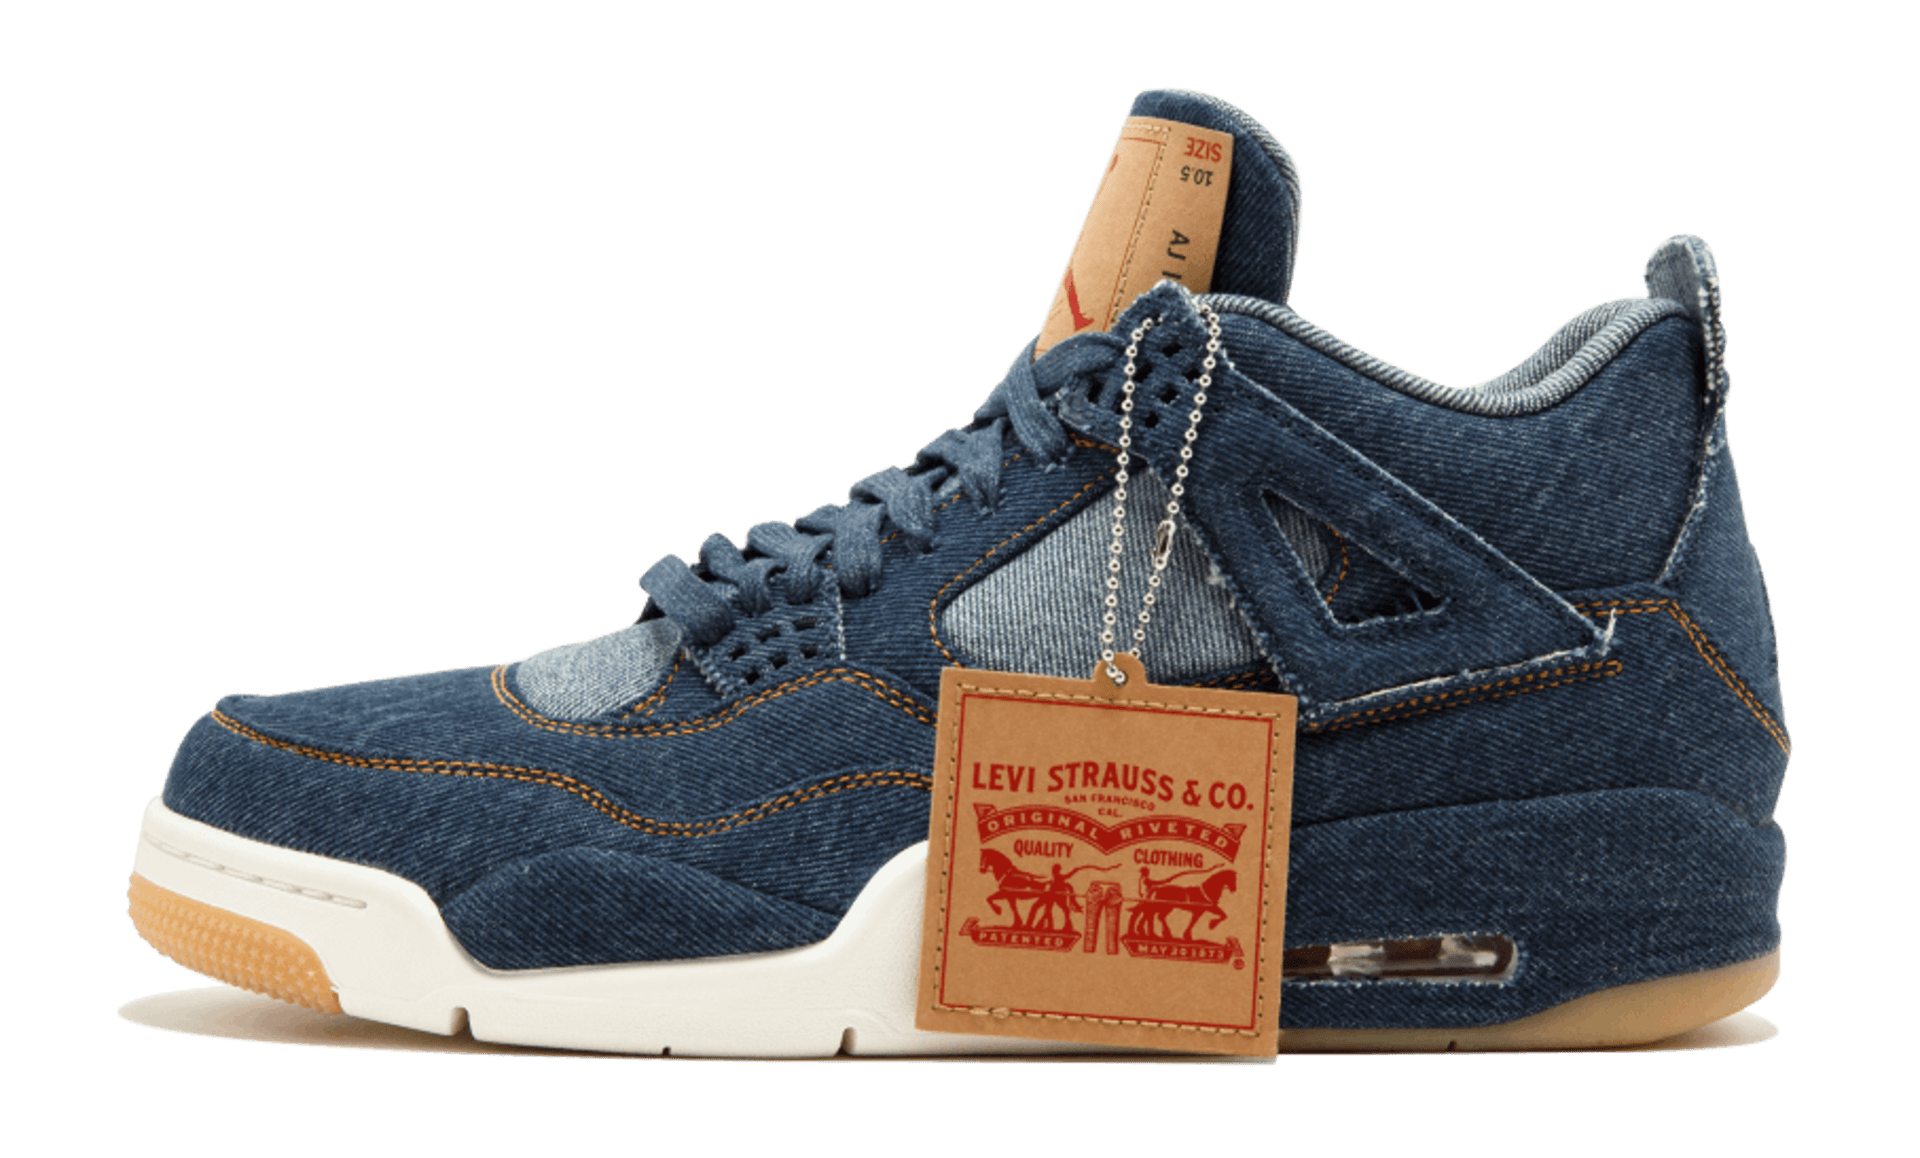 reputable site 323b9 a3b02 The Best Air Jordans of 2018 | Complex